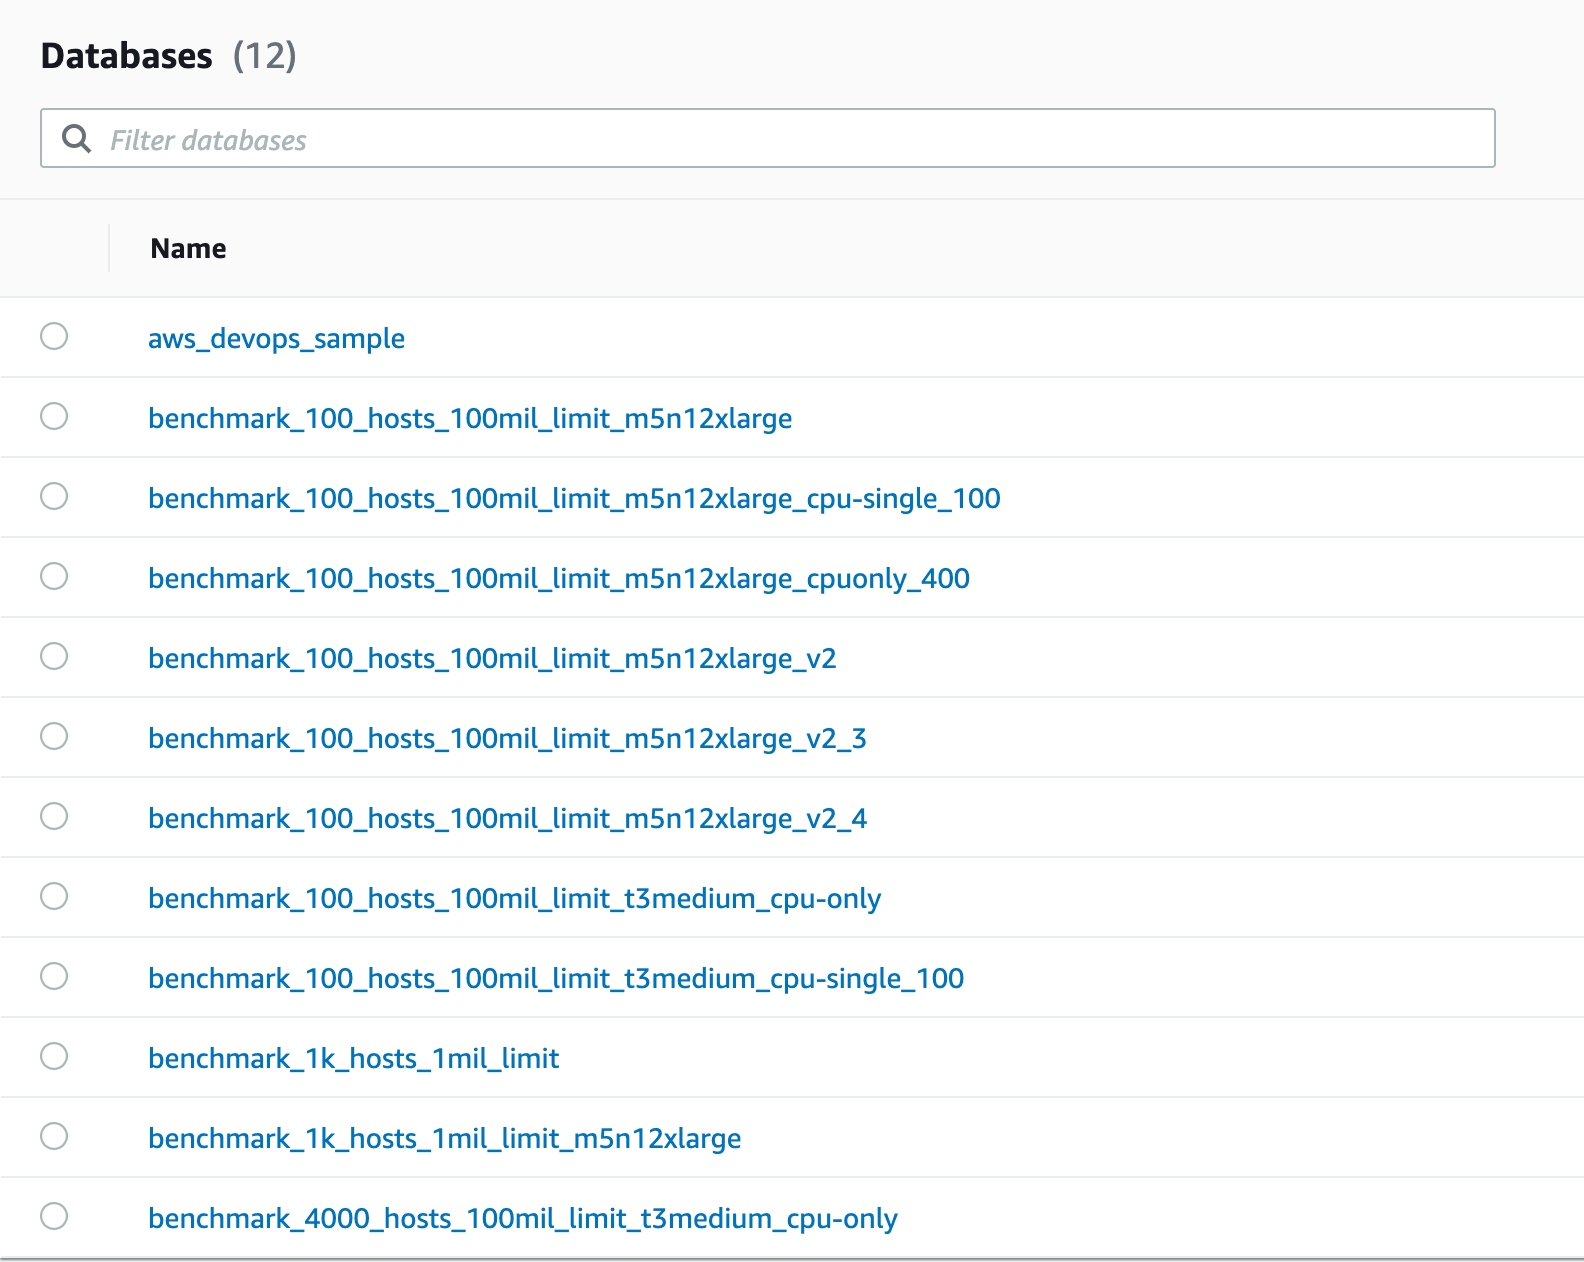 Screenshot of Amazon Timestream UI showing list of databases created during benchmarking process